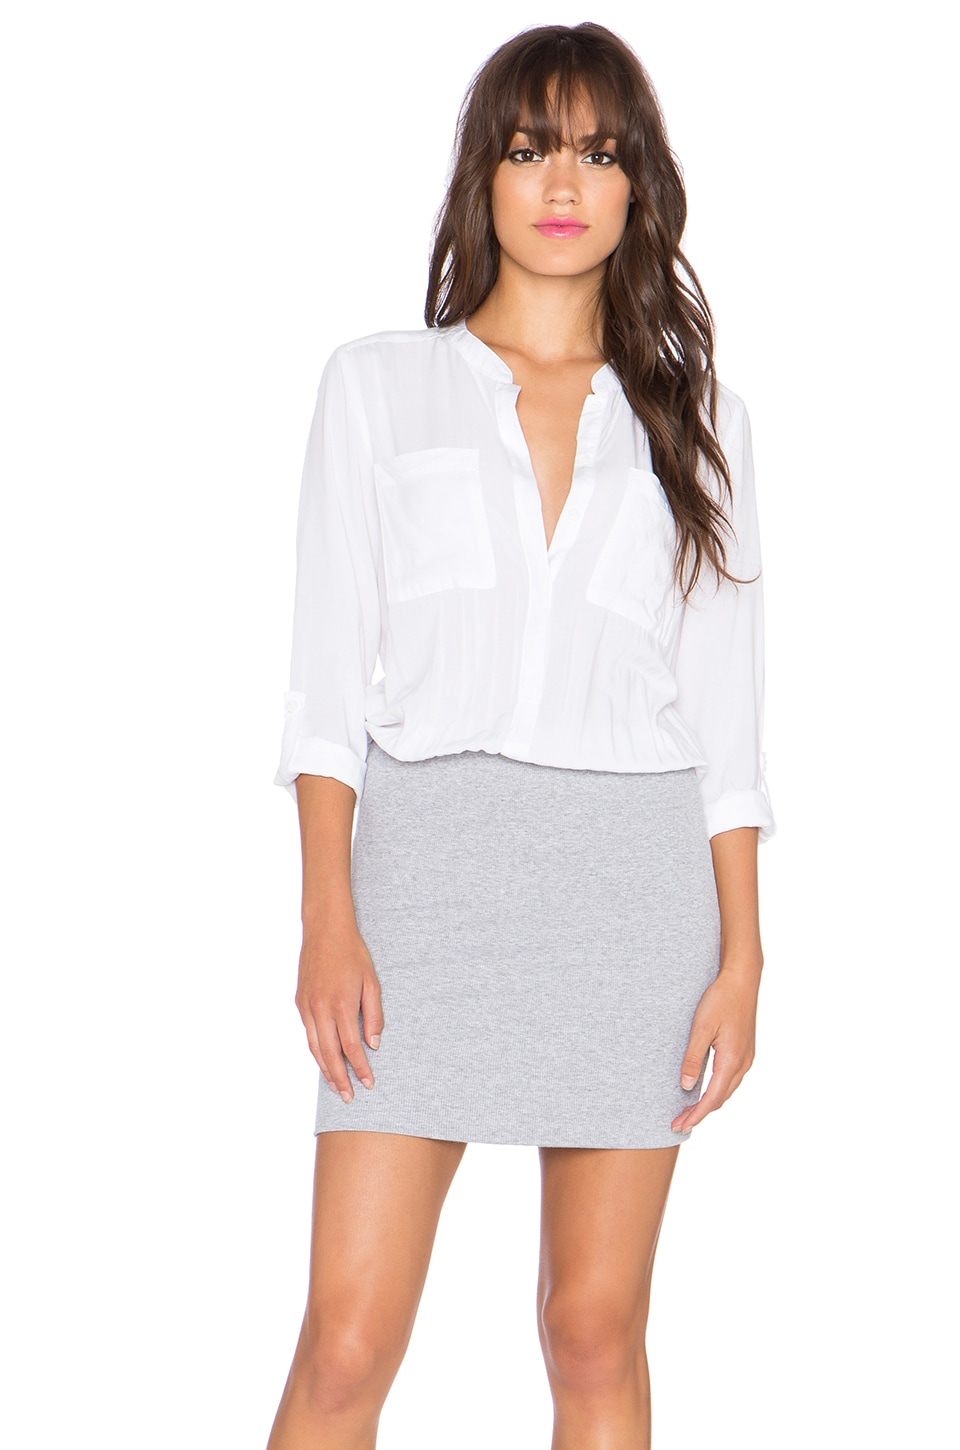 White Button Up Shirt Dress Images